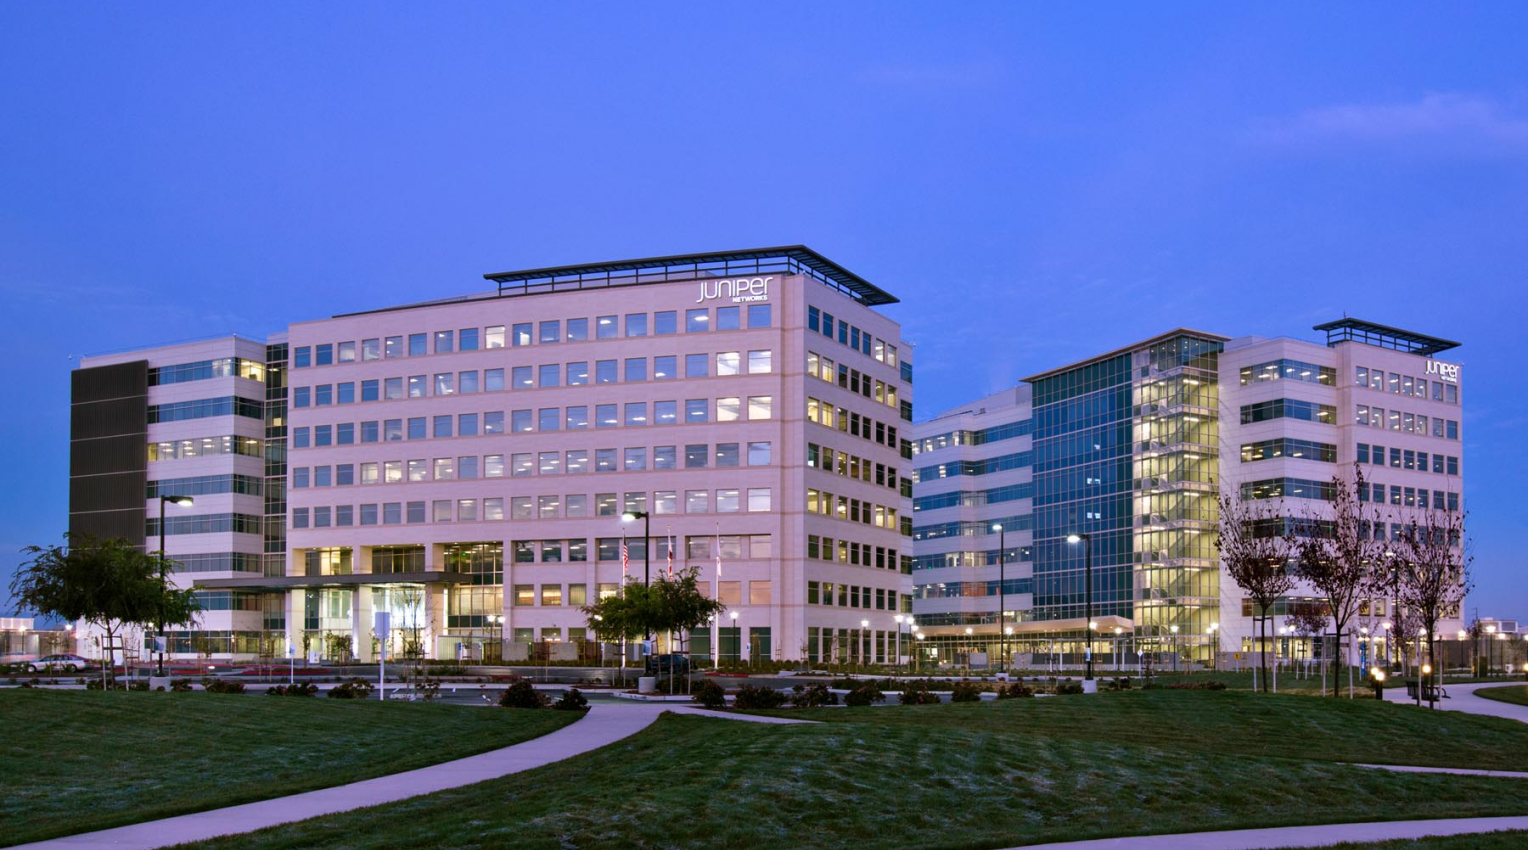 Juniper Networks HQ 001